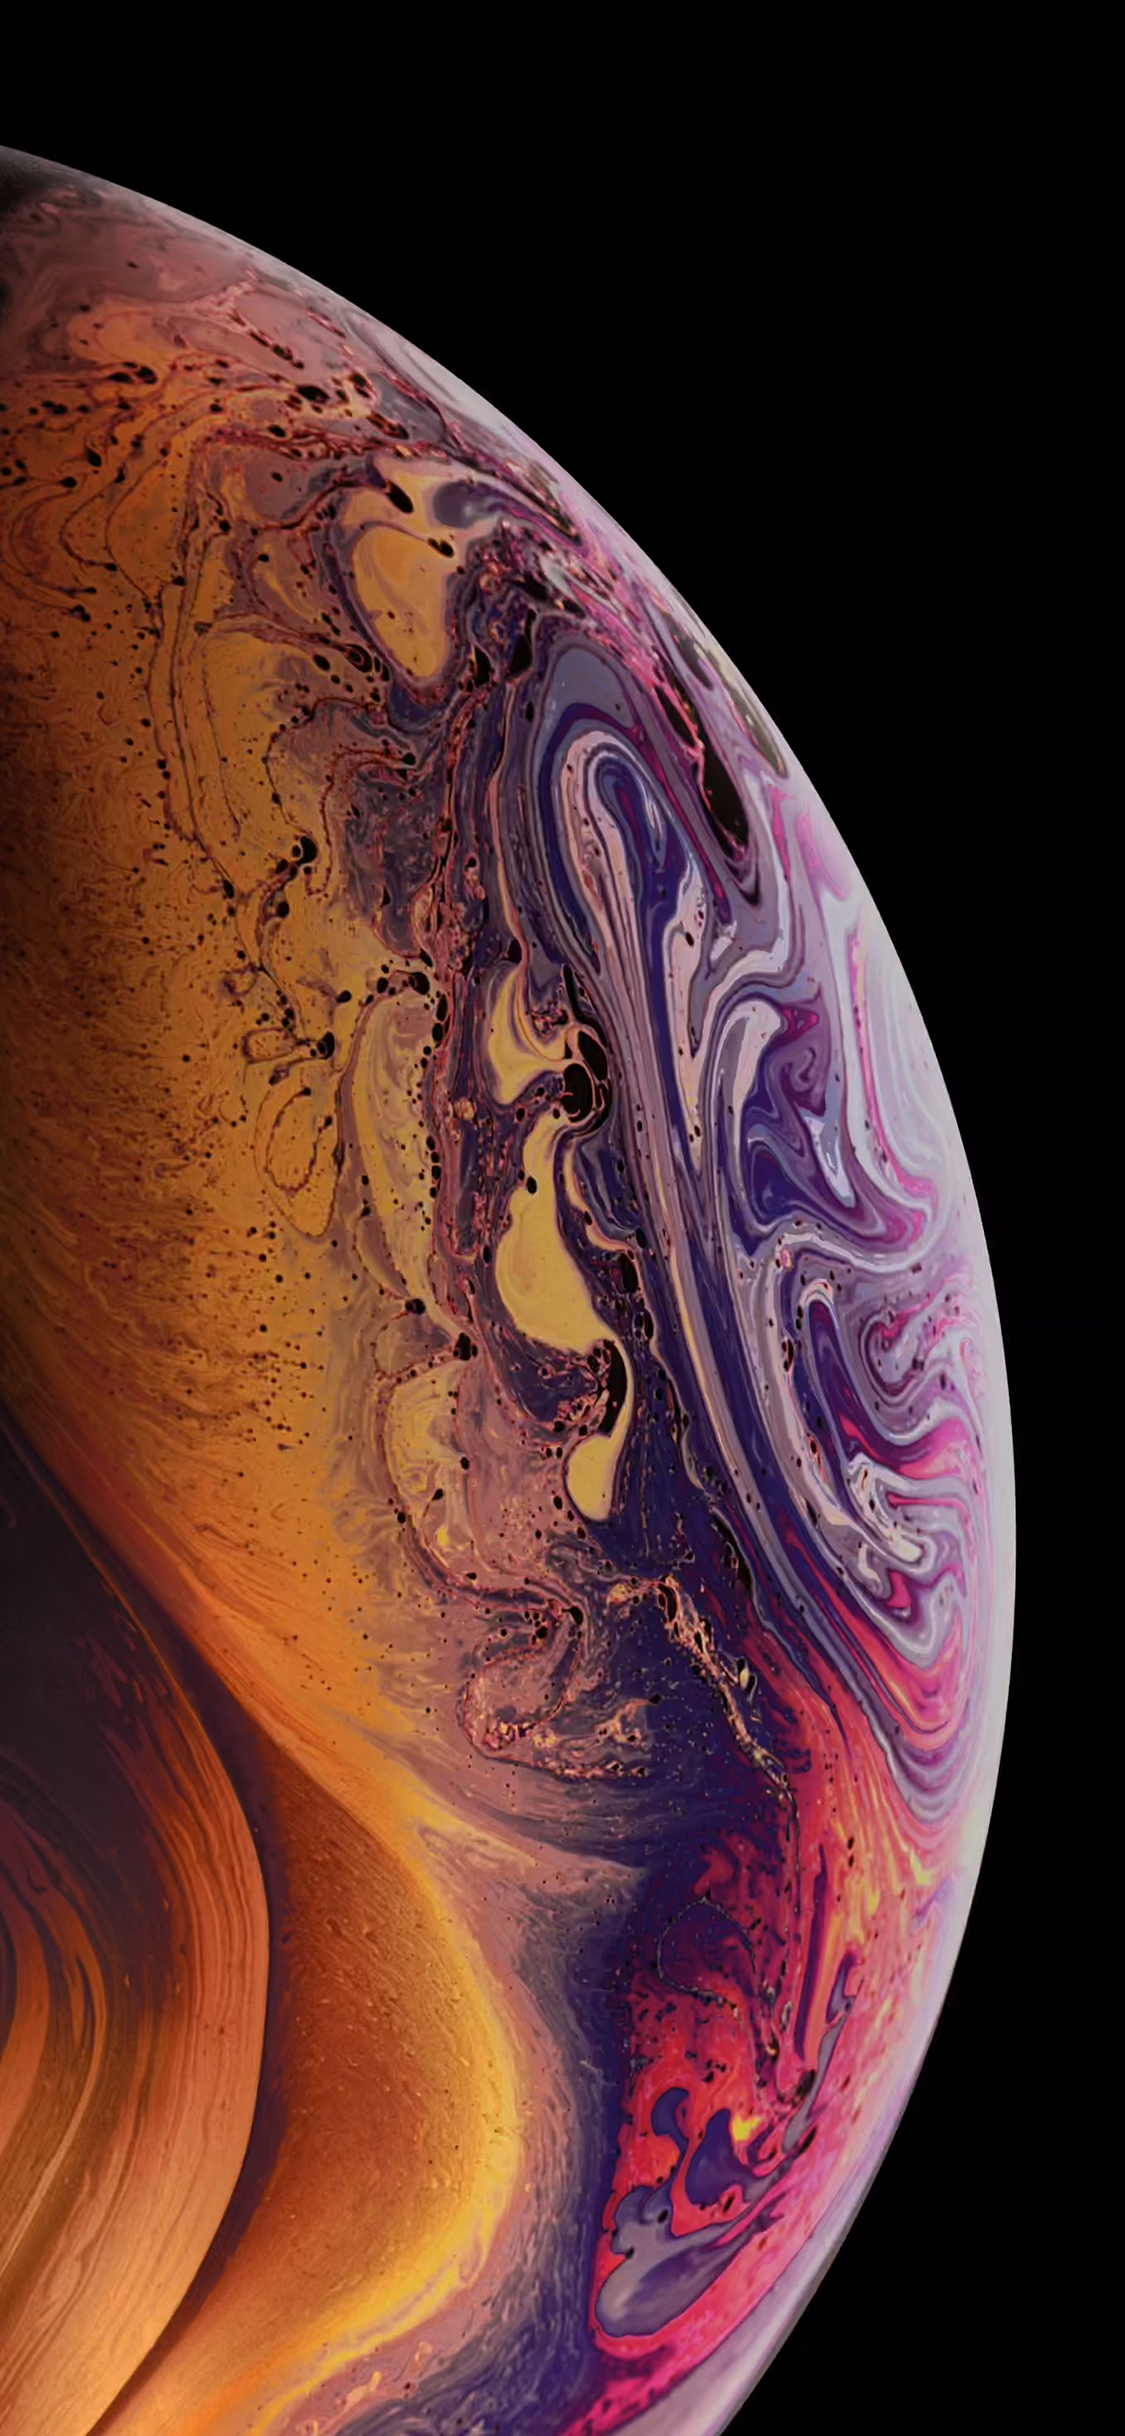 1125x2436 Wallpapers: iPhone Xs, iPhone Xs Max, and iPhone Xr